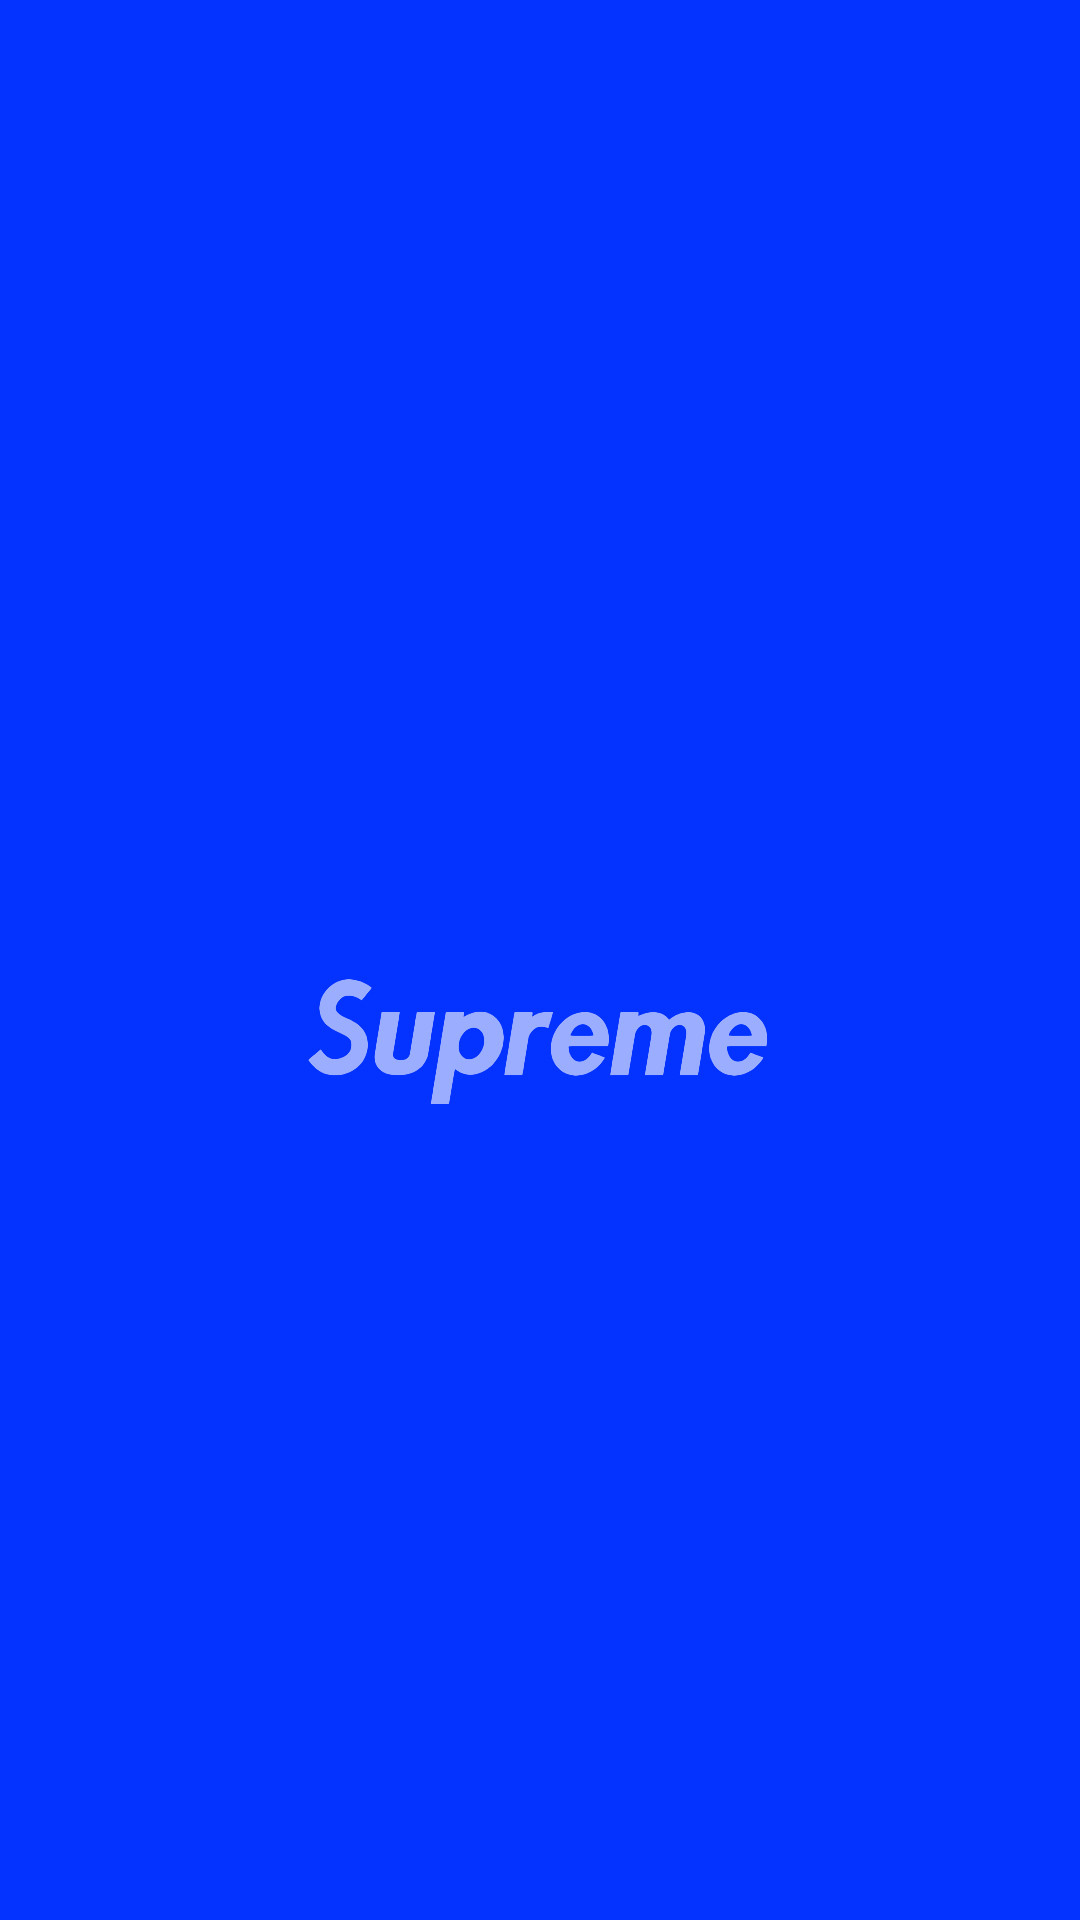 supreme18 - 23 Supreme HQ Smartphone Wallpaper Collection